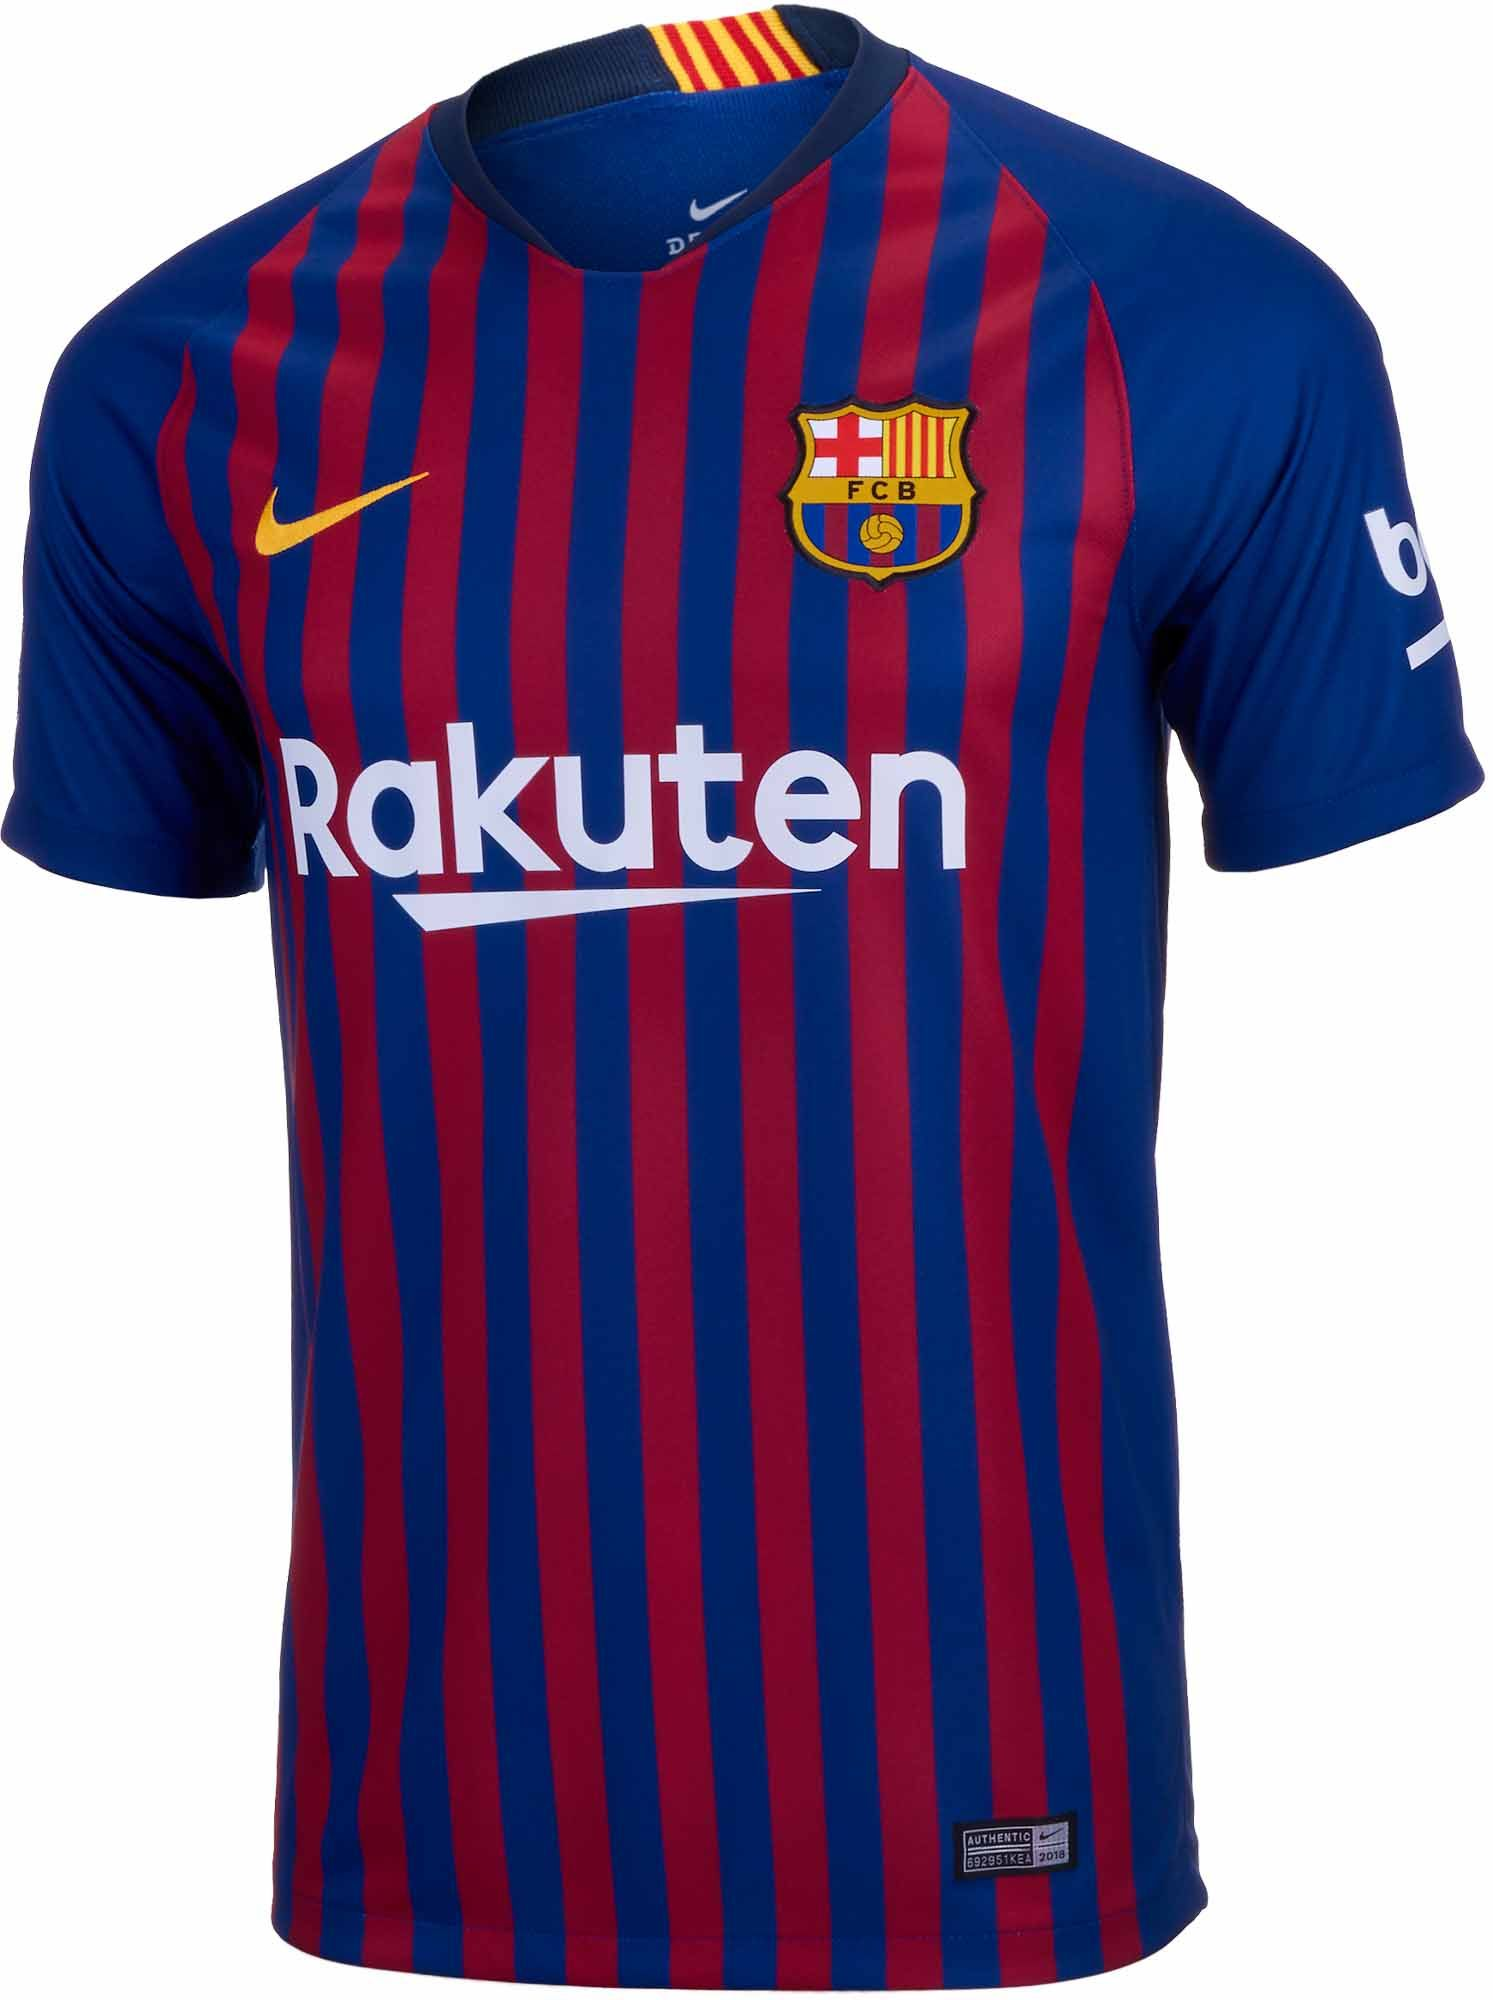 Buy this 2018 19 Kids FC Barcelona Home Jersey from www.soccerpro.com bf4a74c8ee58a